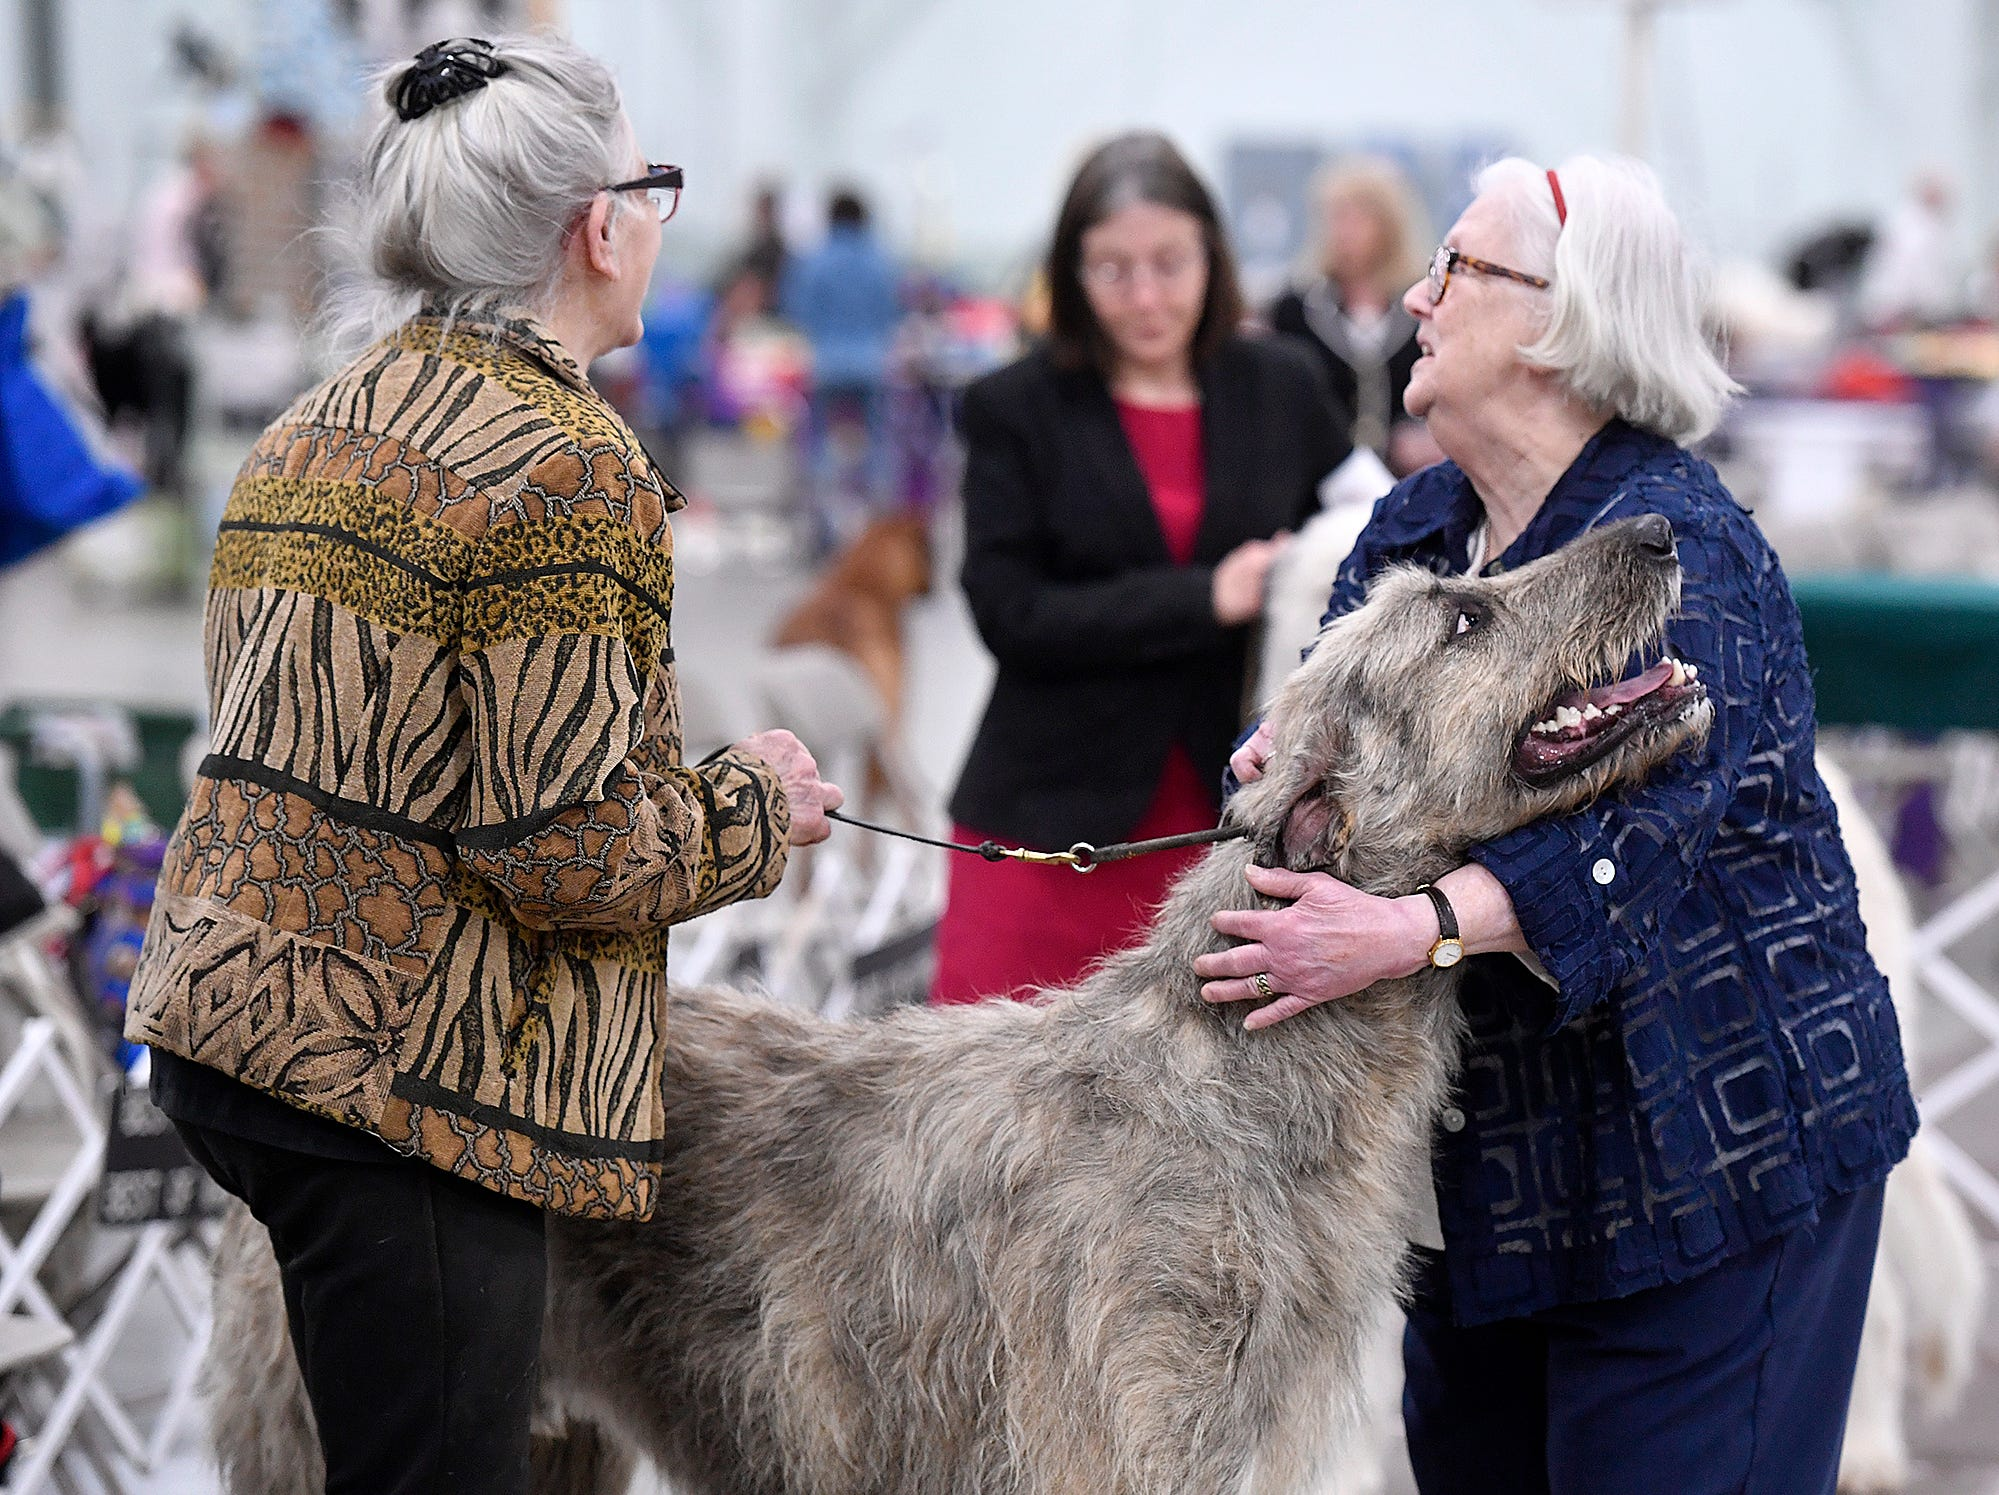 Judge Pricilla Gbosch, right, gets a hug from Irish wolfhound An Awesome Wonder shown by Alice Kneavel, left, of Airville, the annual Celtic Classic Dog Show, Wednesday, March 13, 2018.